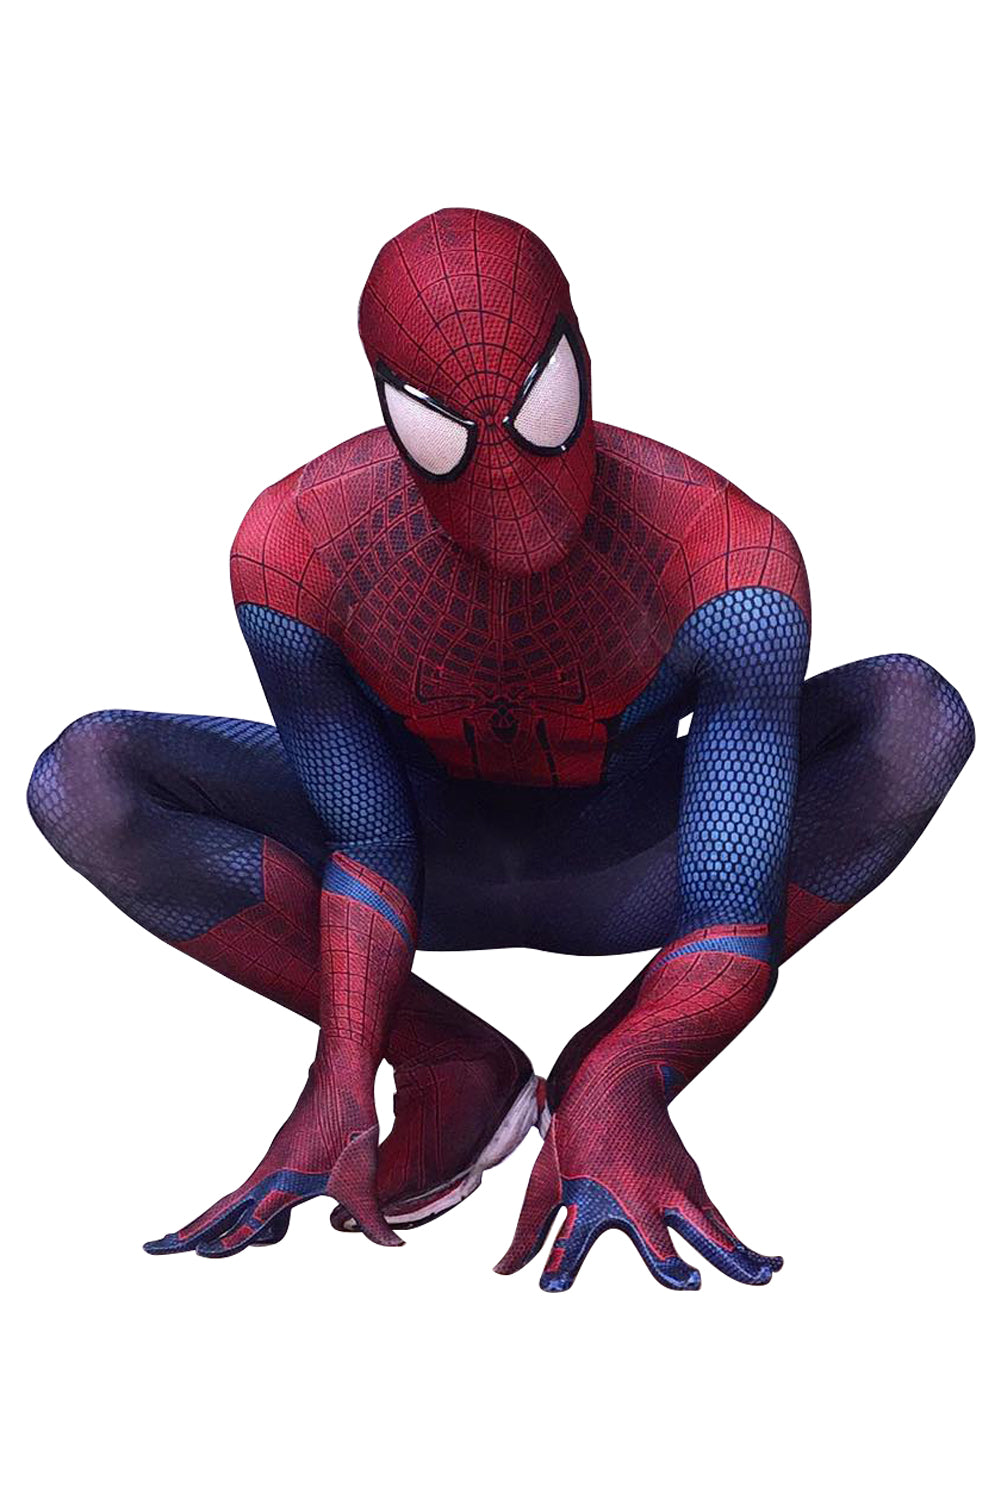 The Amazing Spiderman Costume 3D Print Spandex Spiderman Cosplay Costume